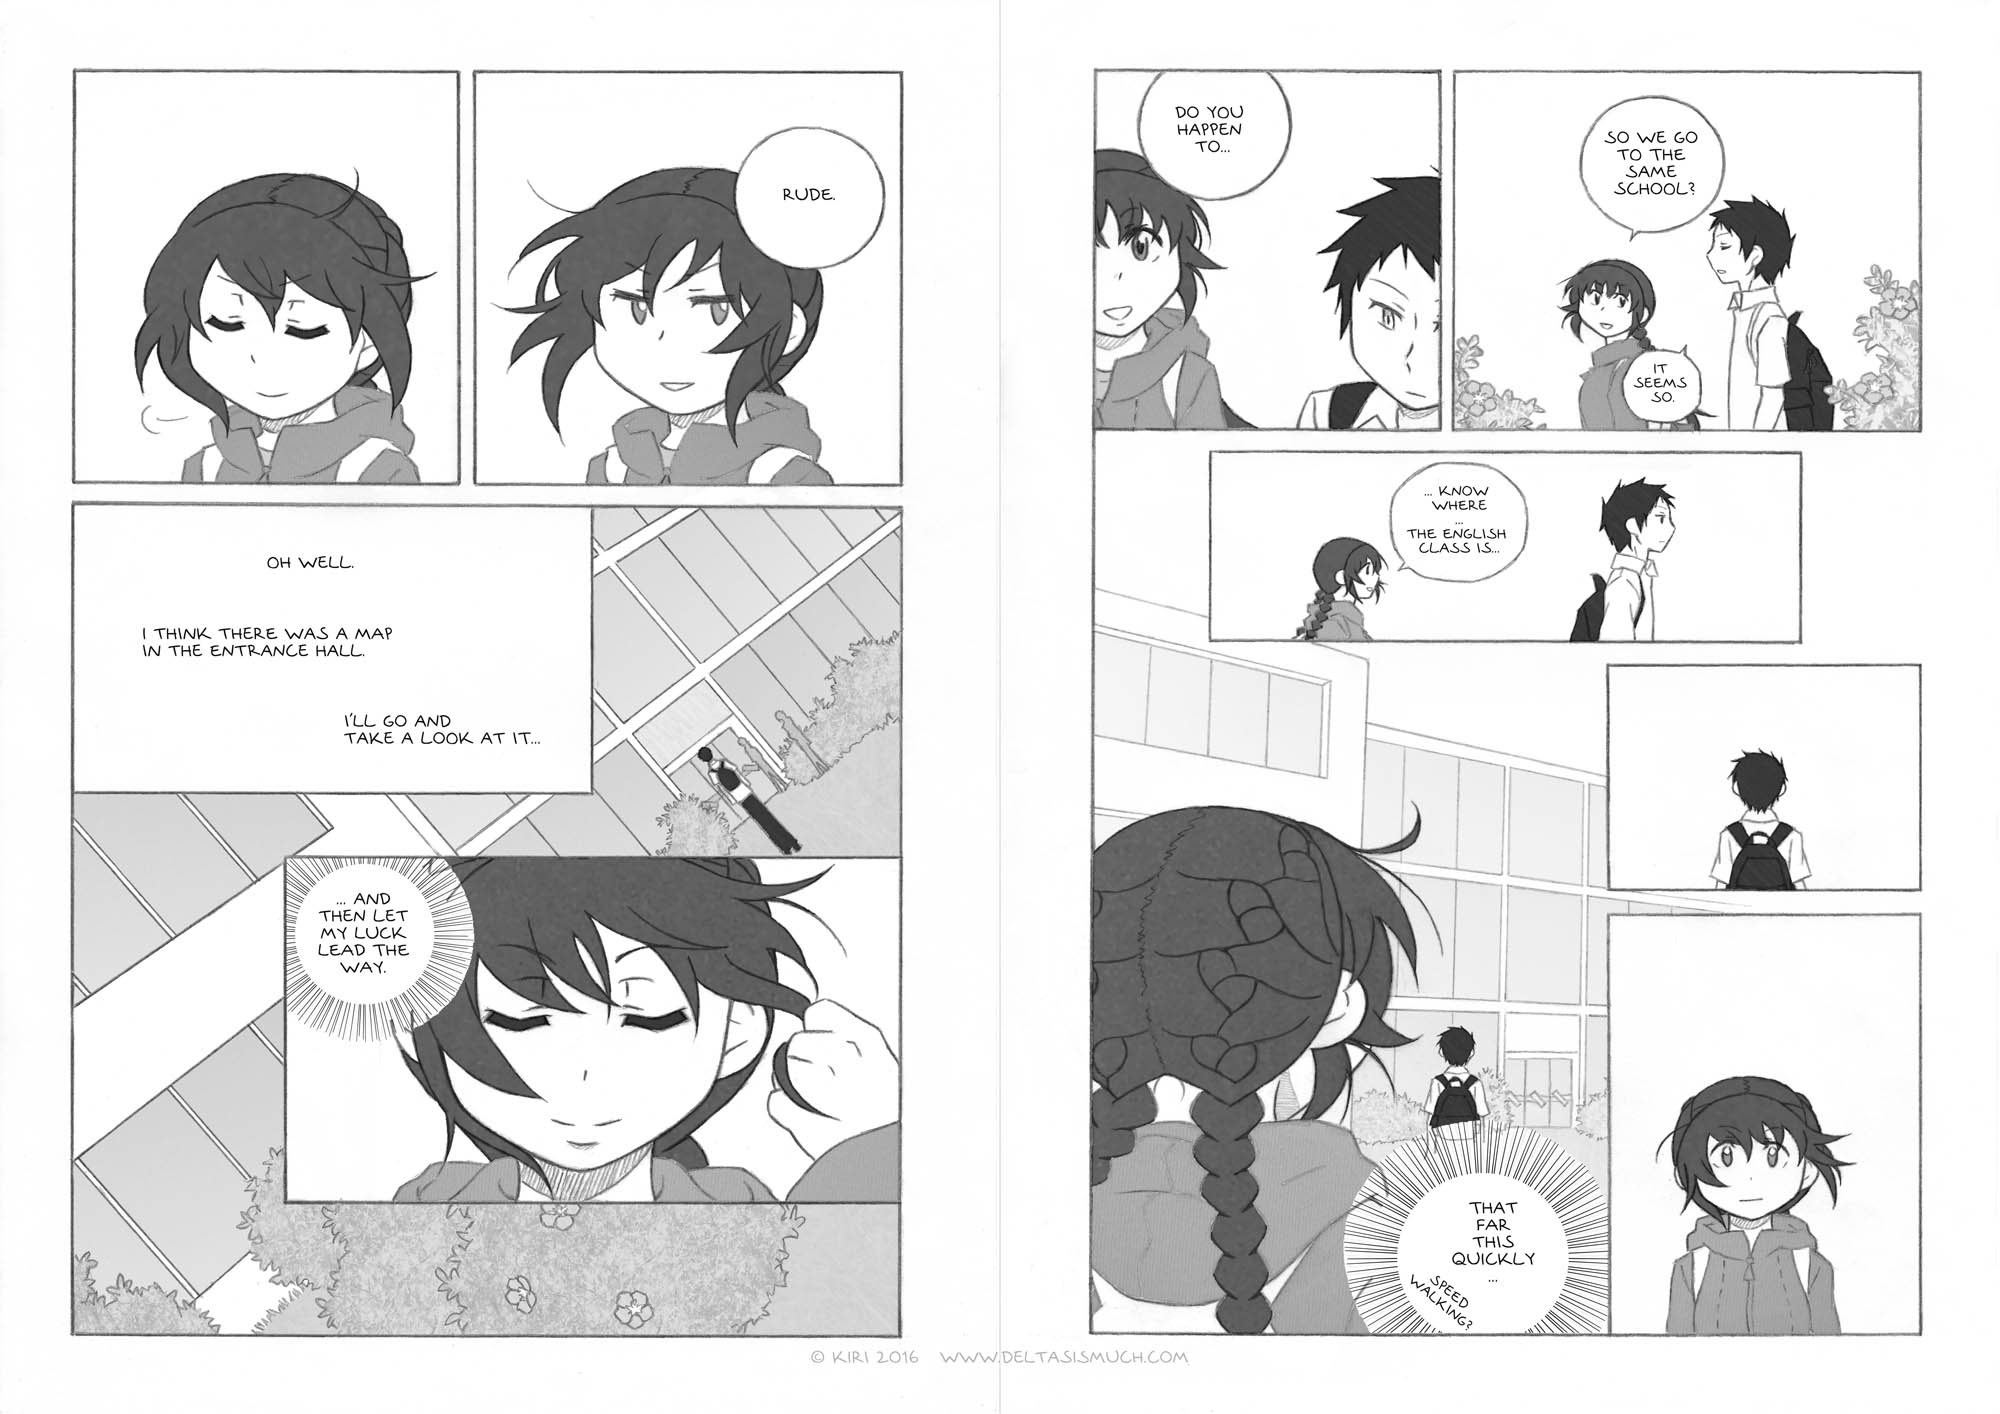 Chapter 1, pages 11 and 12